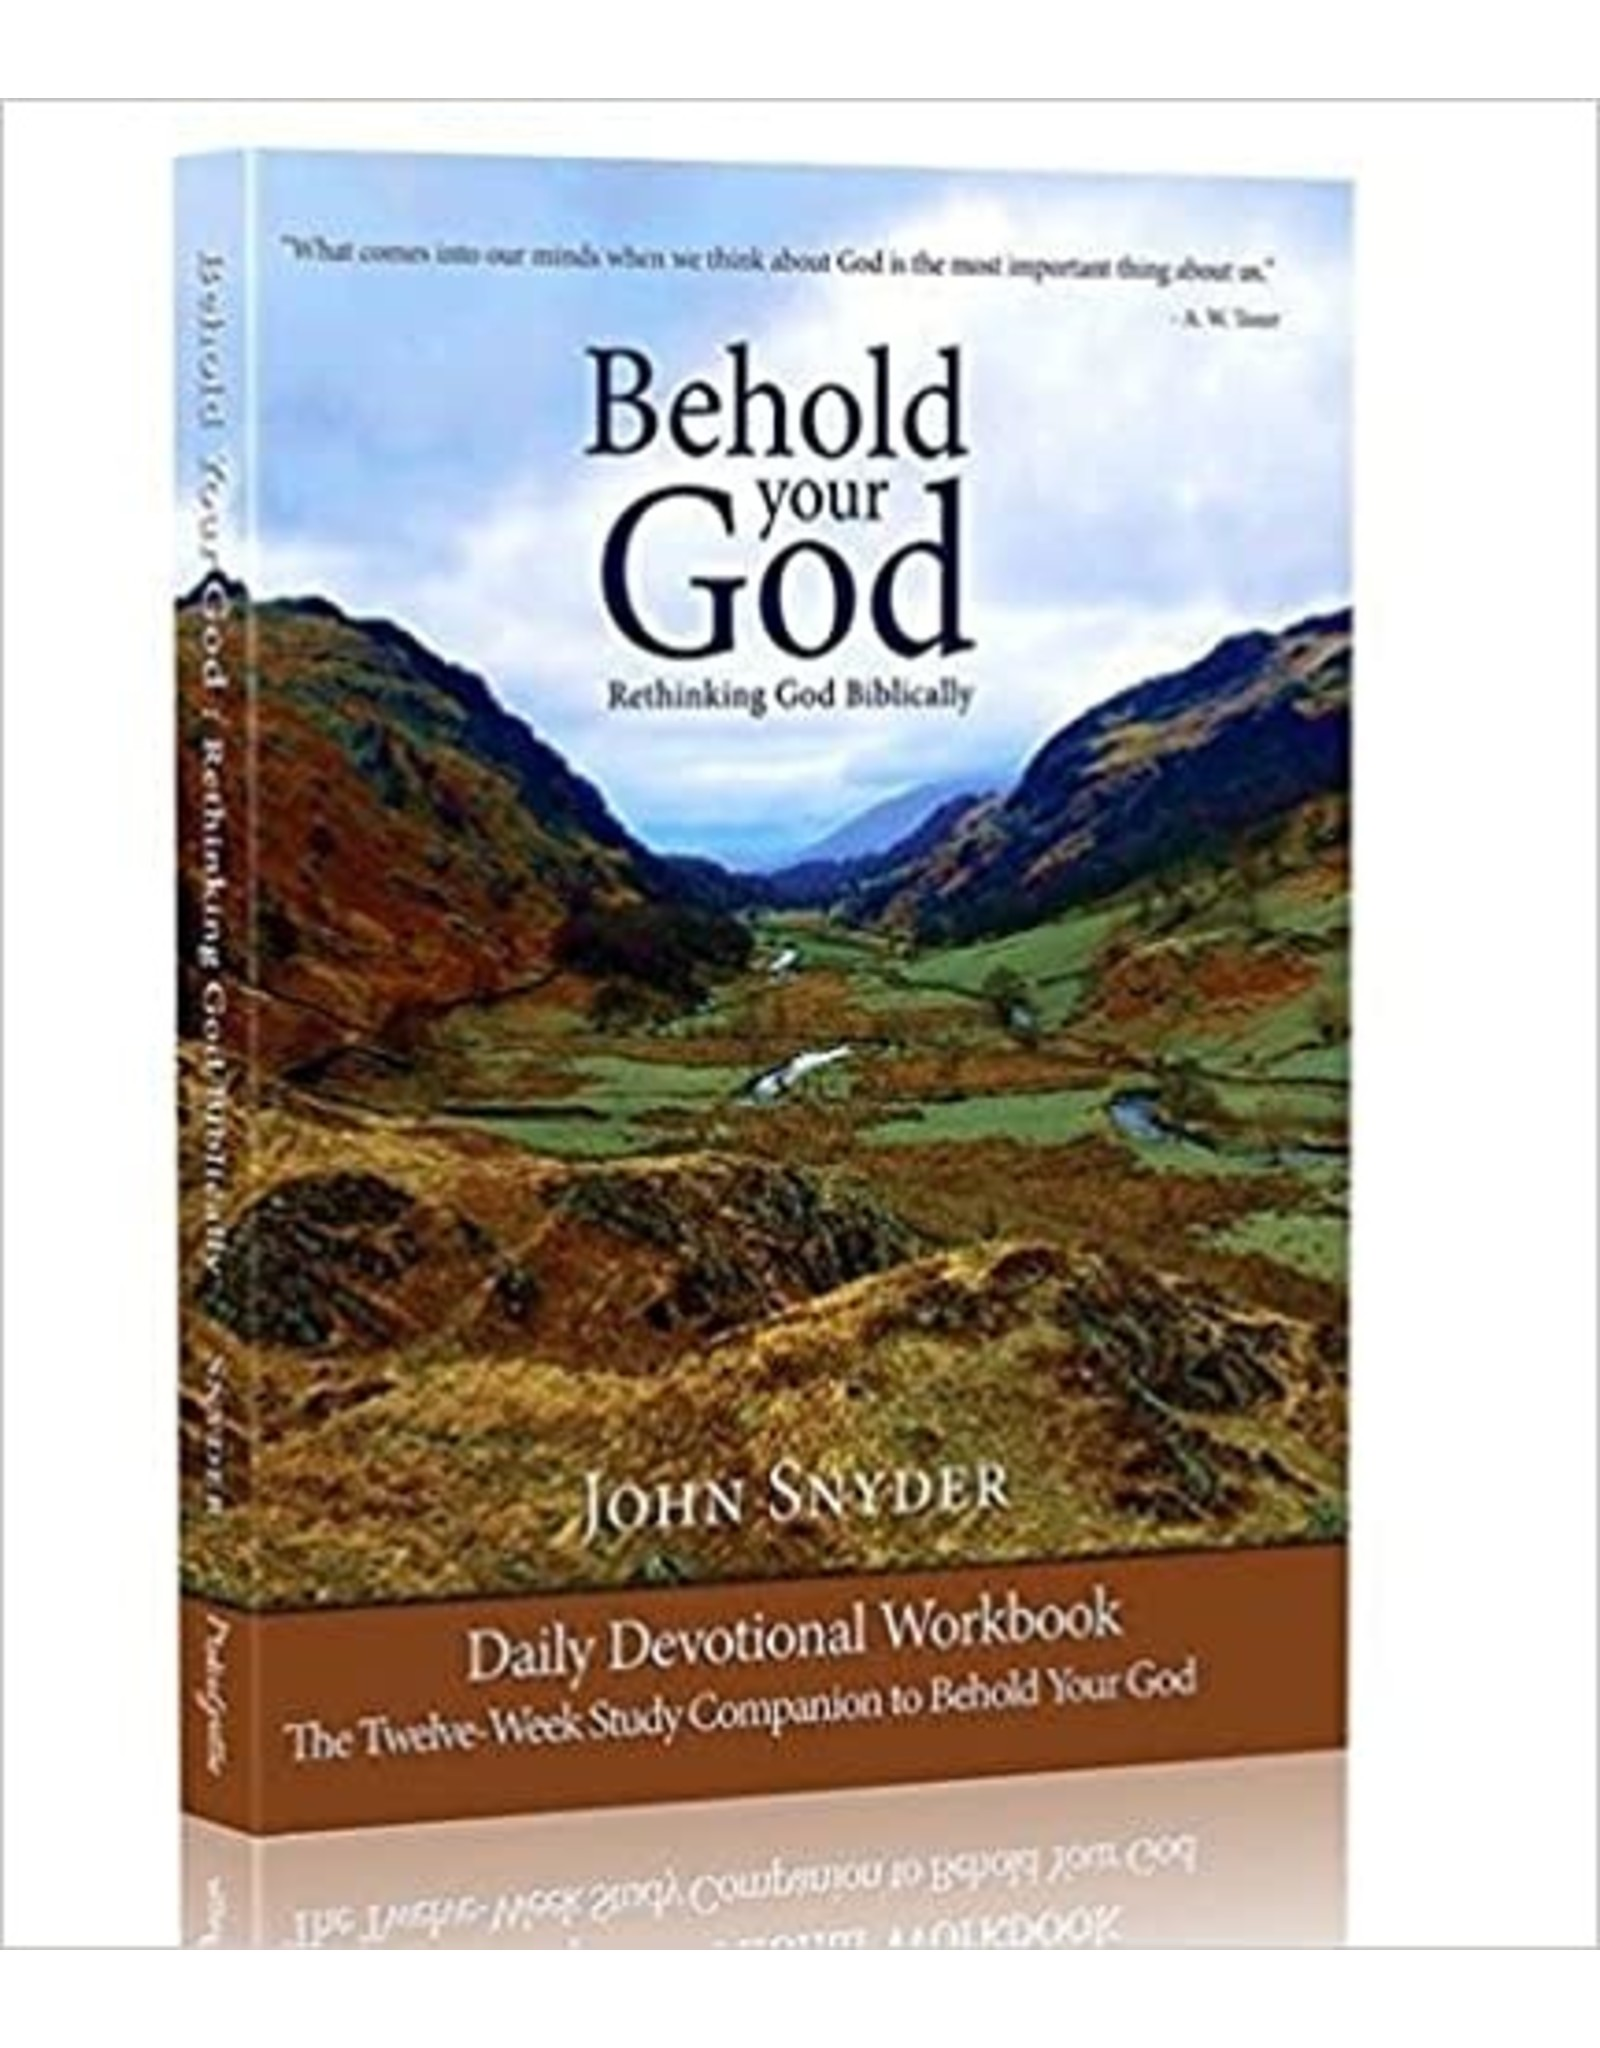 Behold Your God Student: Rethinking God Biblically Workbook (The Twelve-Week Study Companion To Behold Your God)